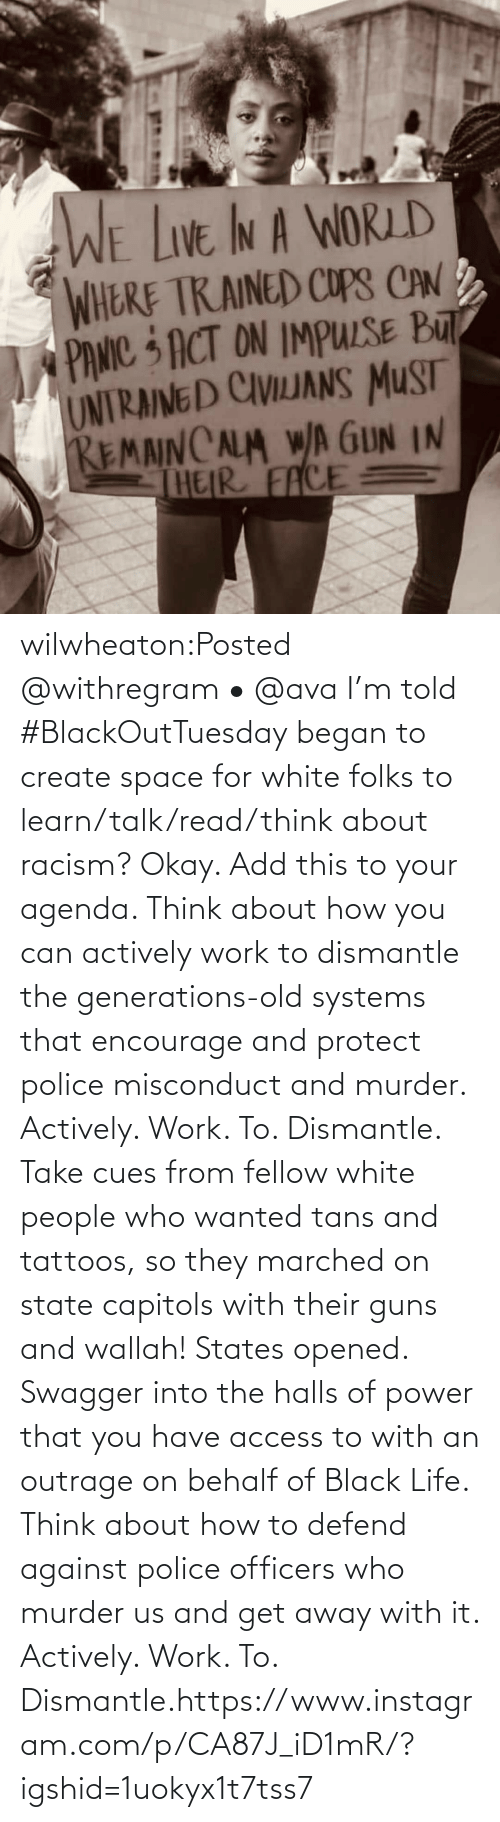 Space: wilwheaton:Posted @withregram • @ava I'm told #BlackOutTuesday began to create space for white folks to learn/talk/read/think about racism? Okay. Add this to your agenda. Think about how you can actively work to dismantle the generations-old systems that encourage and protect police misconduct and murder. Actively. Work. To. Dismantle. Take cues from fellow white people who wanted tans and tattoos, so they marched on state capitols with their guns and wallah! States opened. Swagger into the halls of power that you have access to with an outrage on behalf of Black Life. Think about how to defend against police officers who murder us and get away with it. Actively. Work. To. Dismantle.https://www.instagram.com/p/CA87J_iD1mR/?igshid=1uokyx1t7tss7